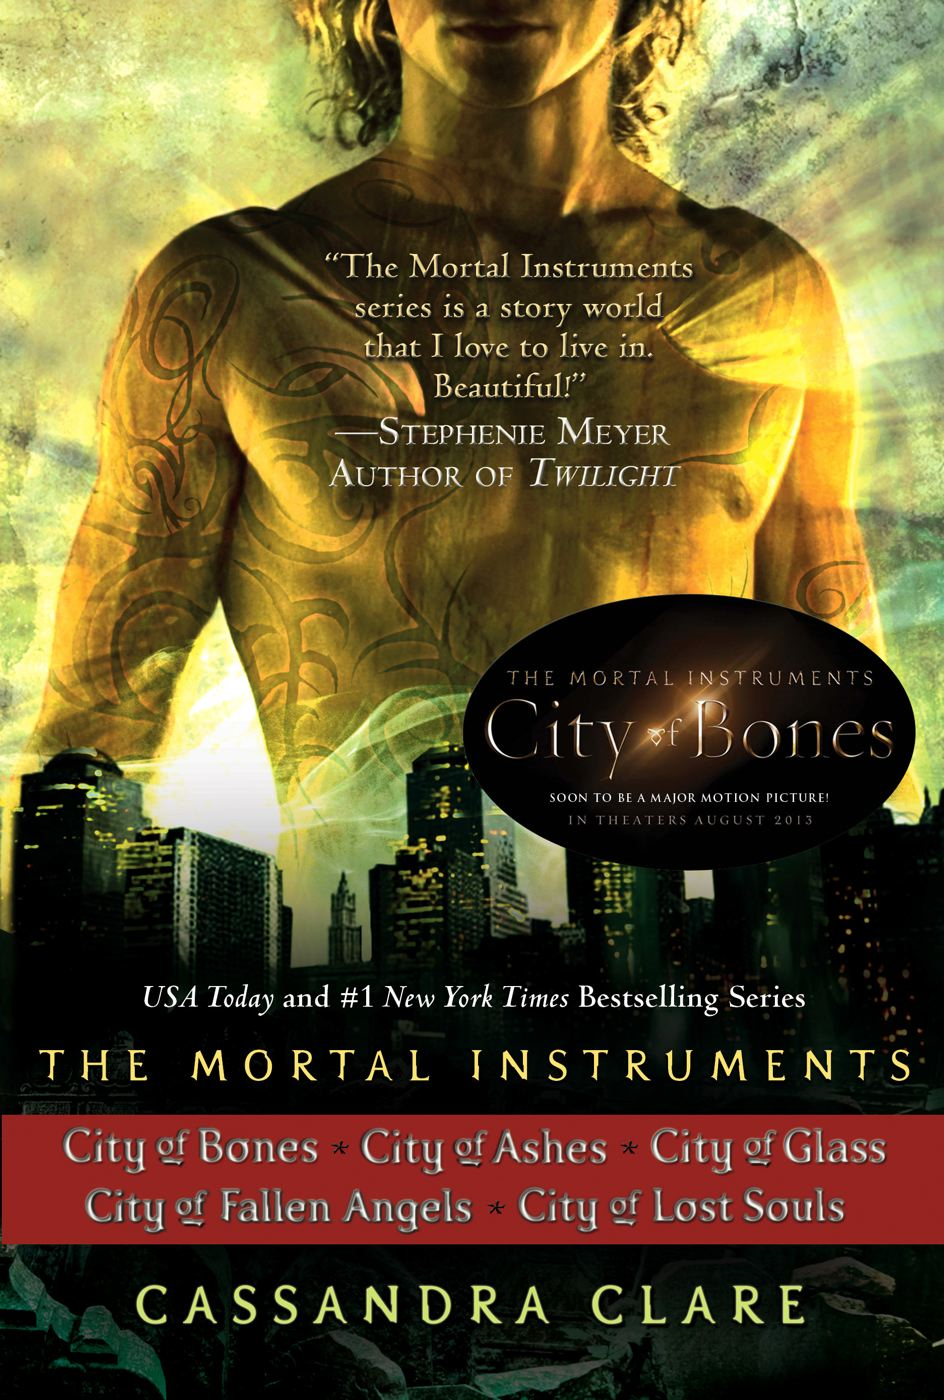 Cassandra Clare: The Mortal Instruments Series